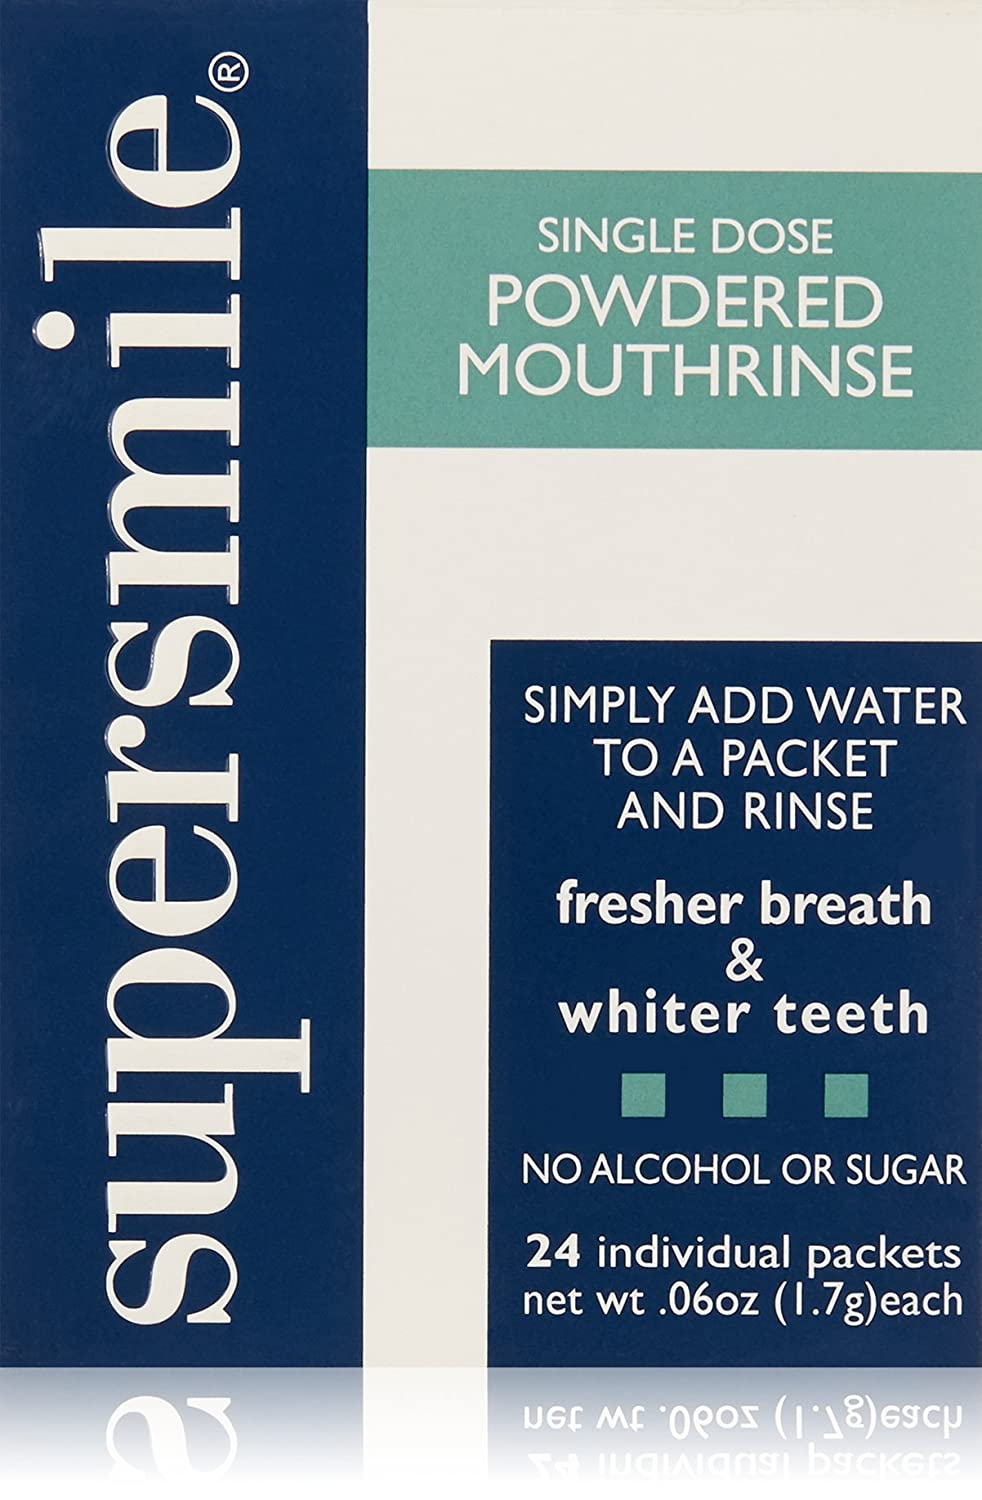 Supersmile Powdered Mouth Rinse, 24 Individual Packers 0.06-Ounce Each 329